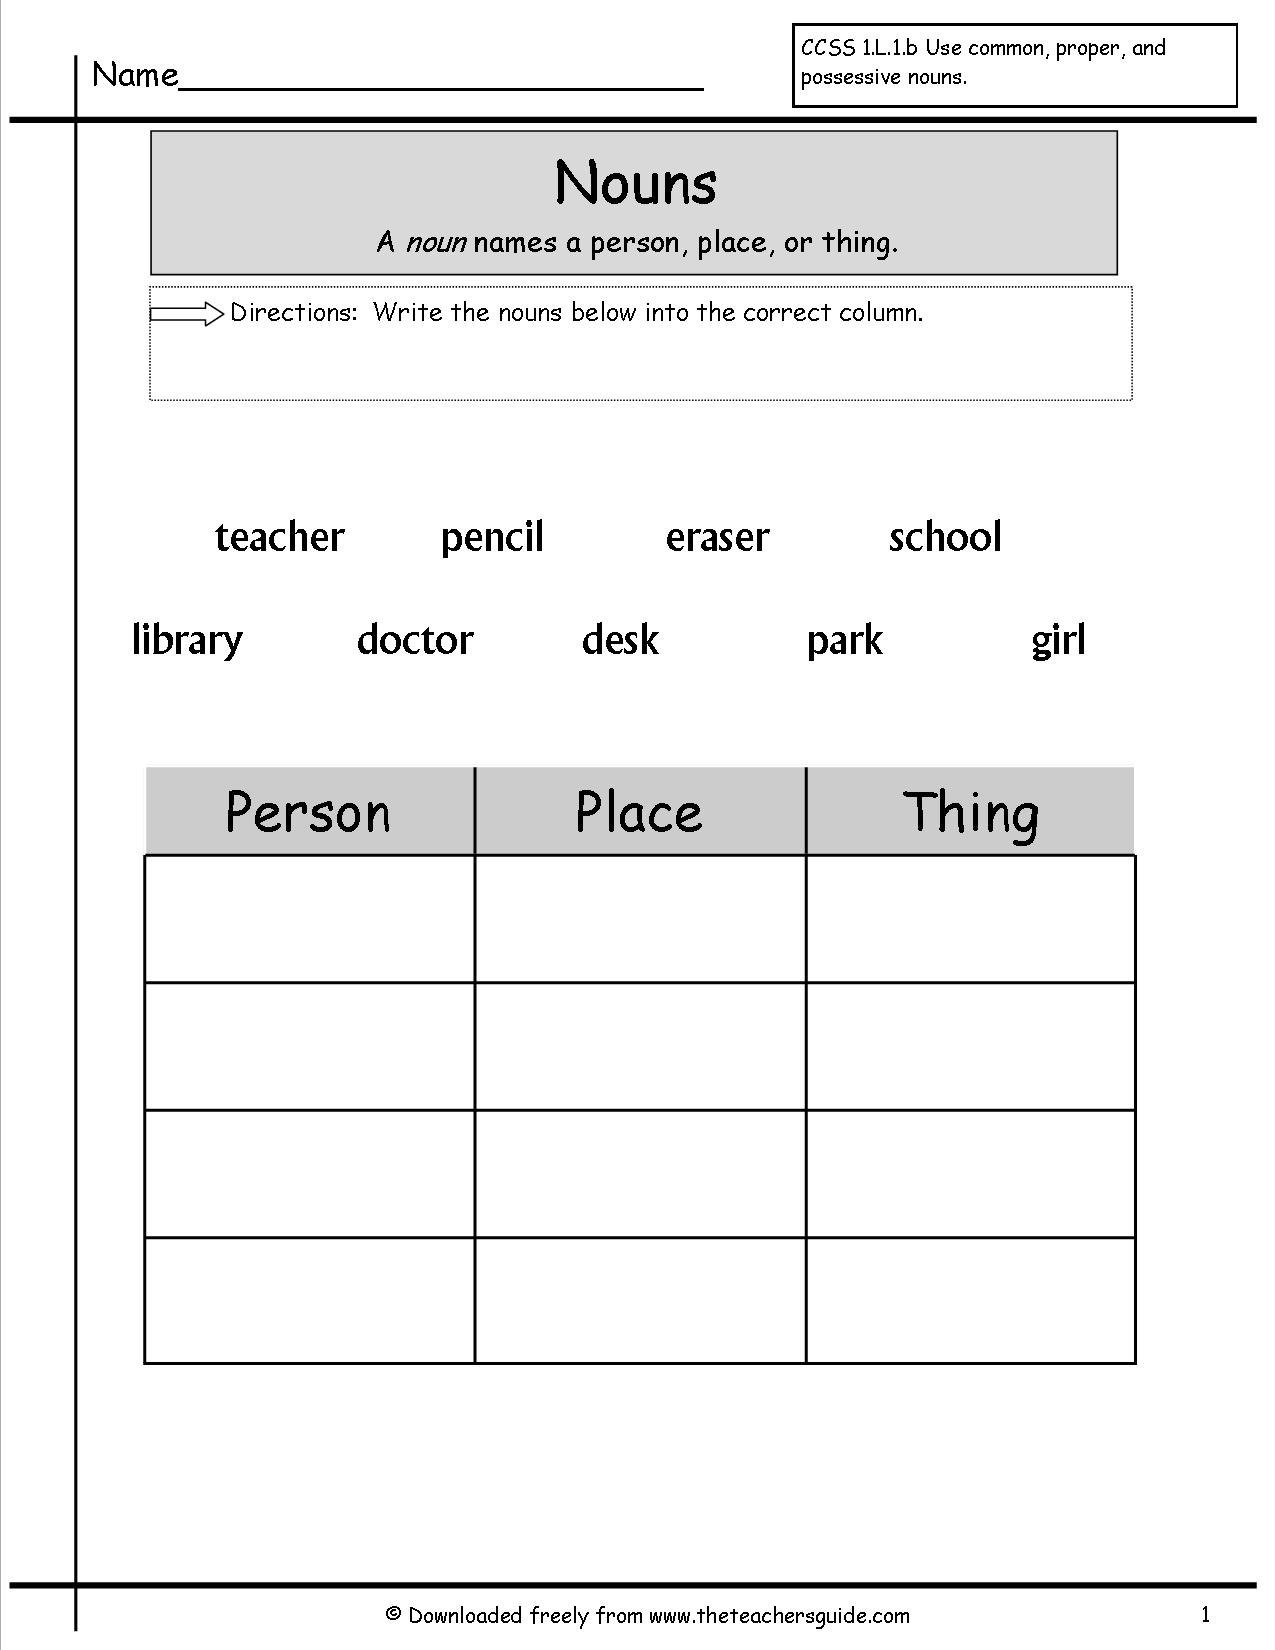 15 Best Images Of Nouns And Verbs Worksheets Sentences